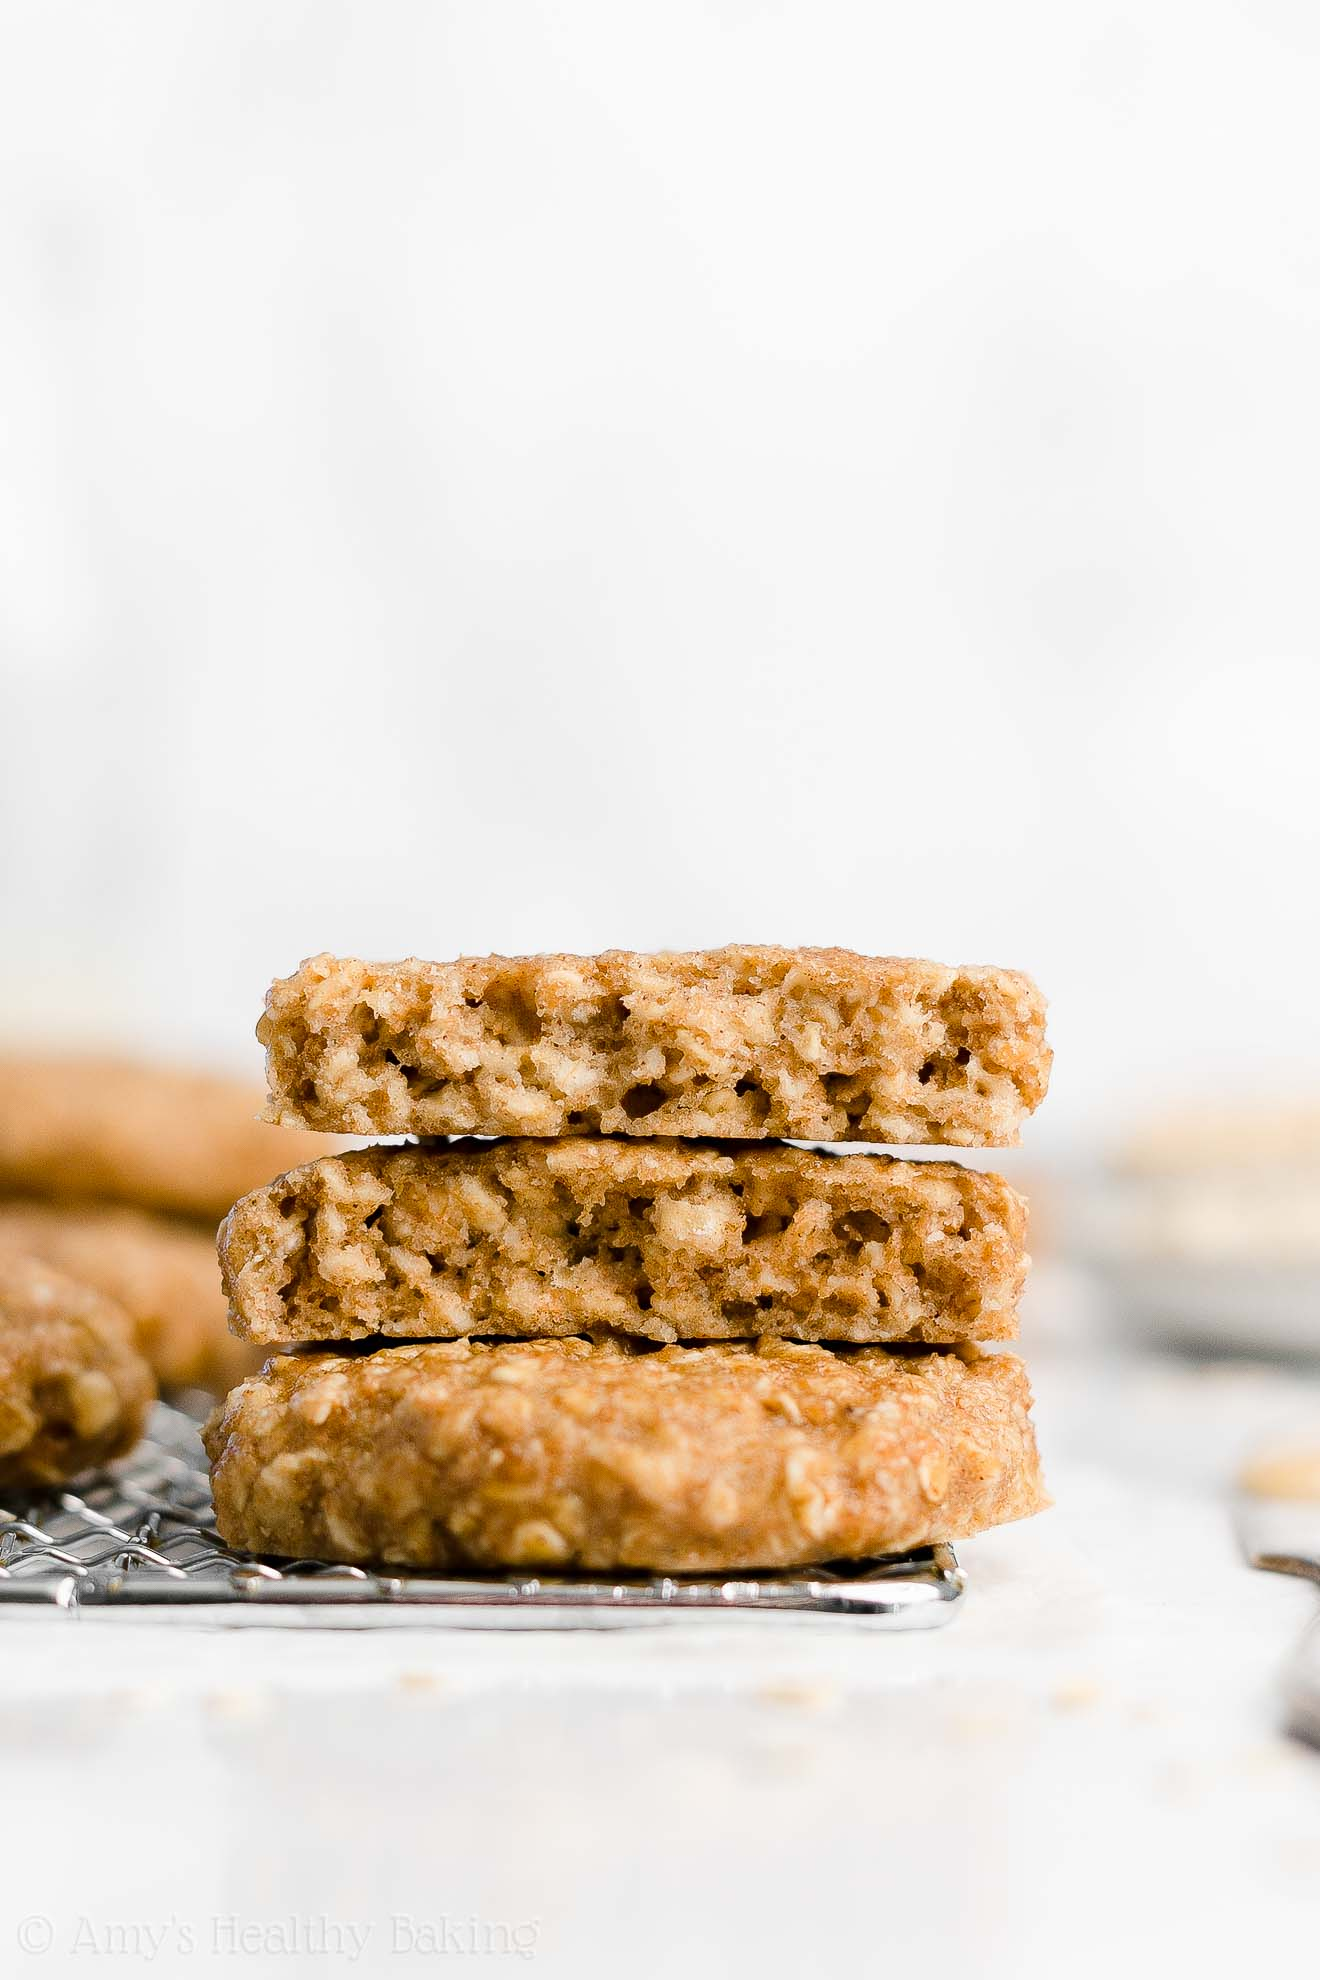 Easy Healthy Vegan Gluten Free Peanut Butter Banana Oatmeal Breakfast Cookies